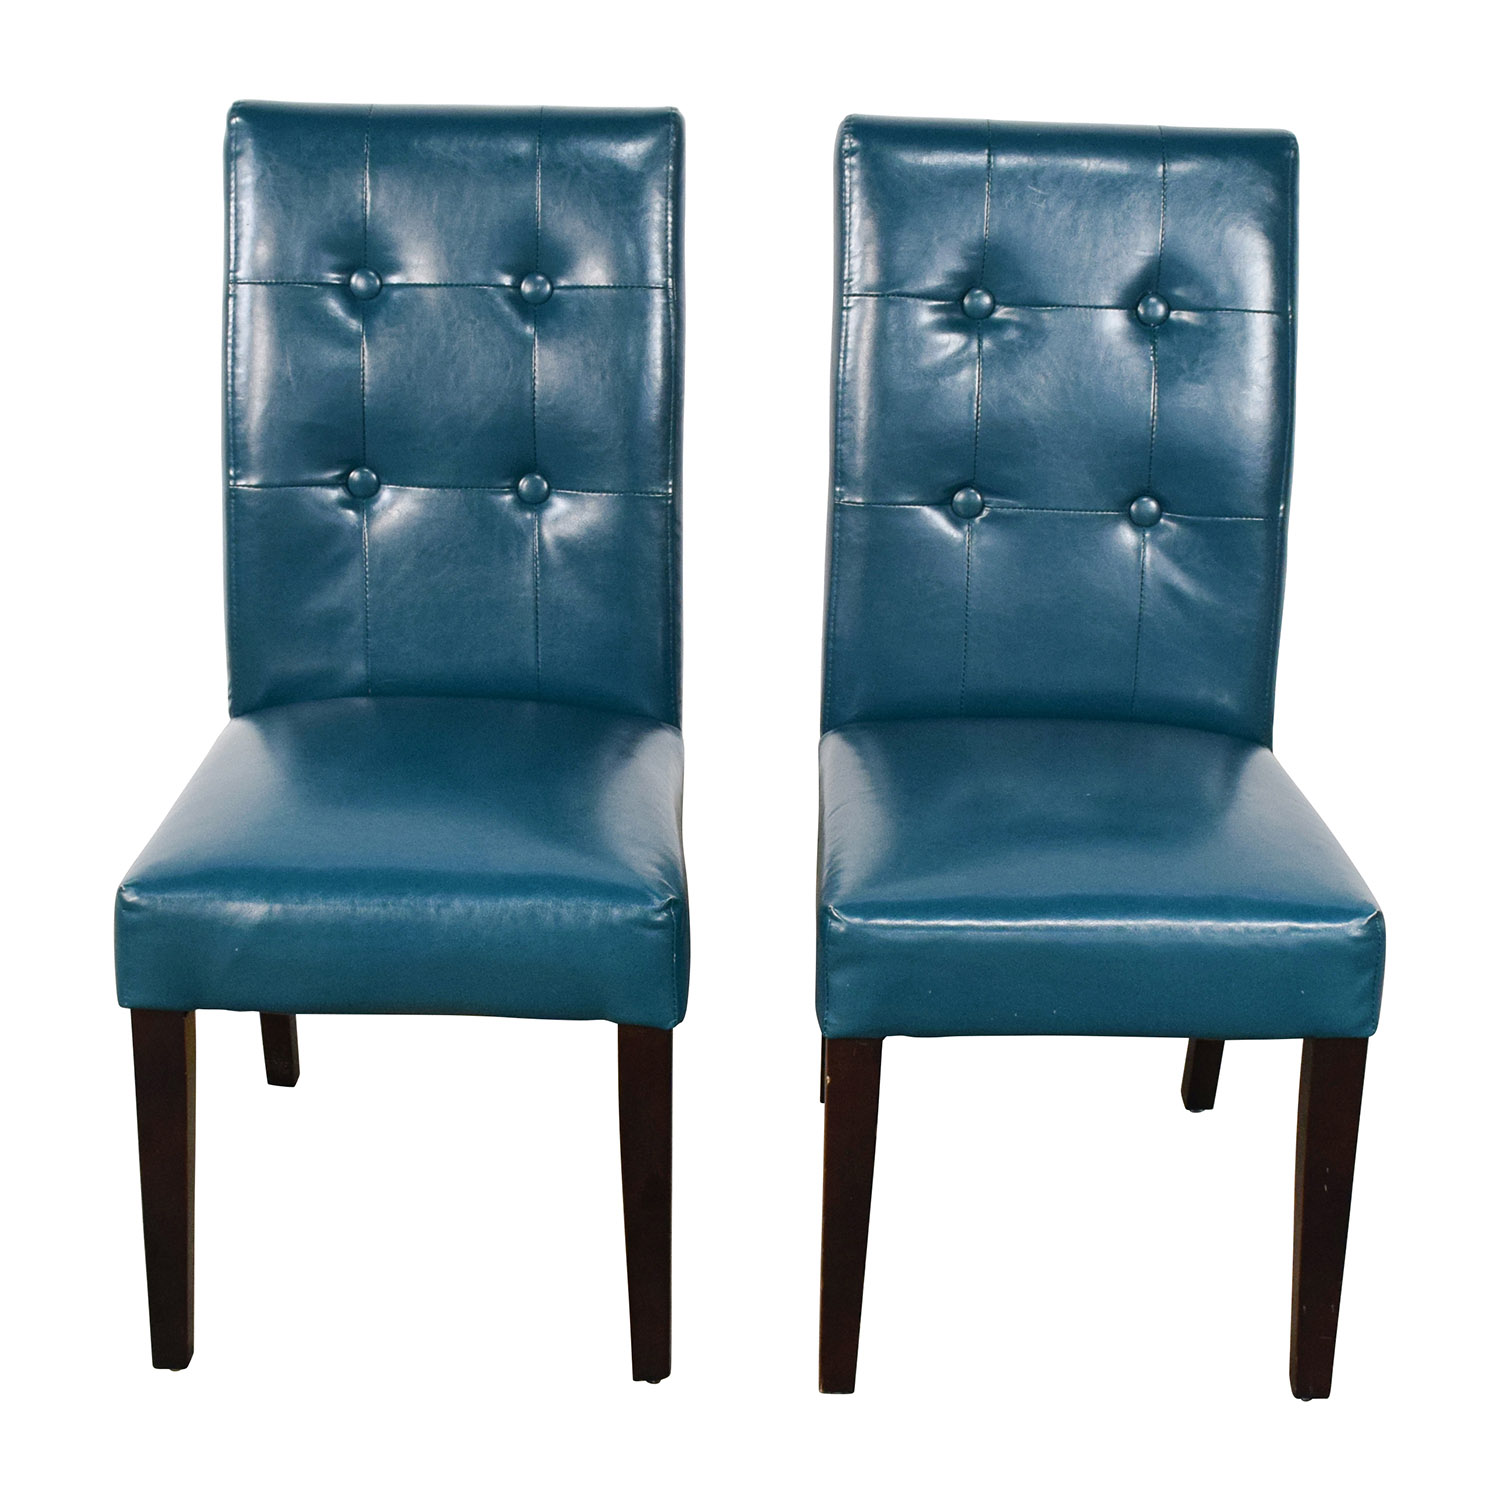 Pier 1 Imports Pier 1 Imports Mason Collection Teal Dining Chairs dimensions